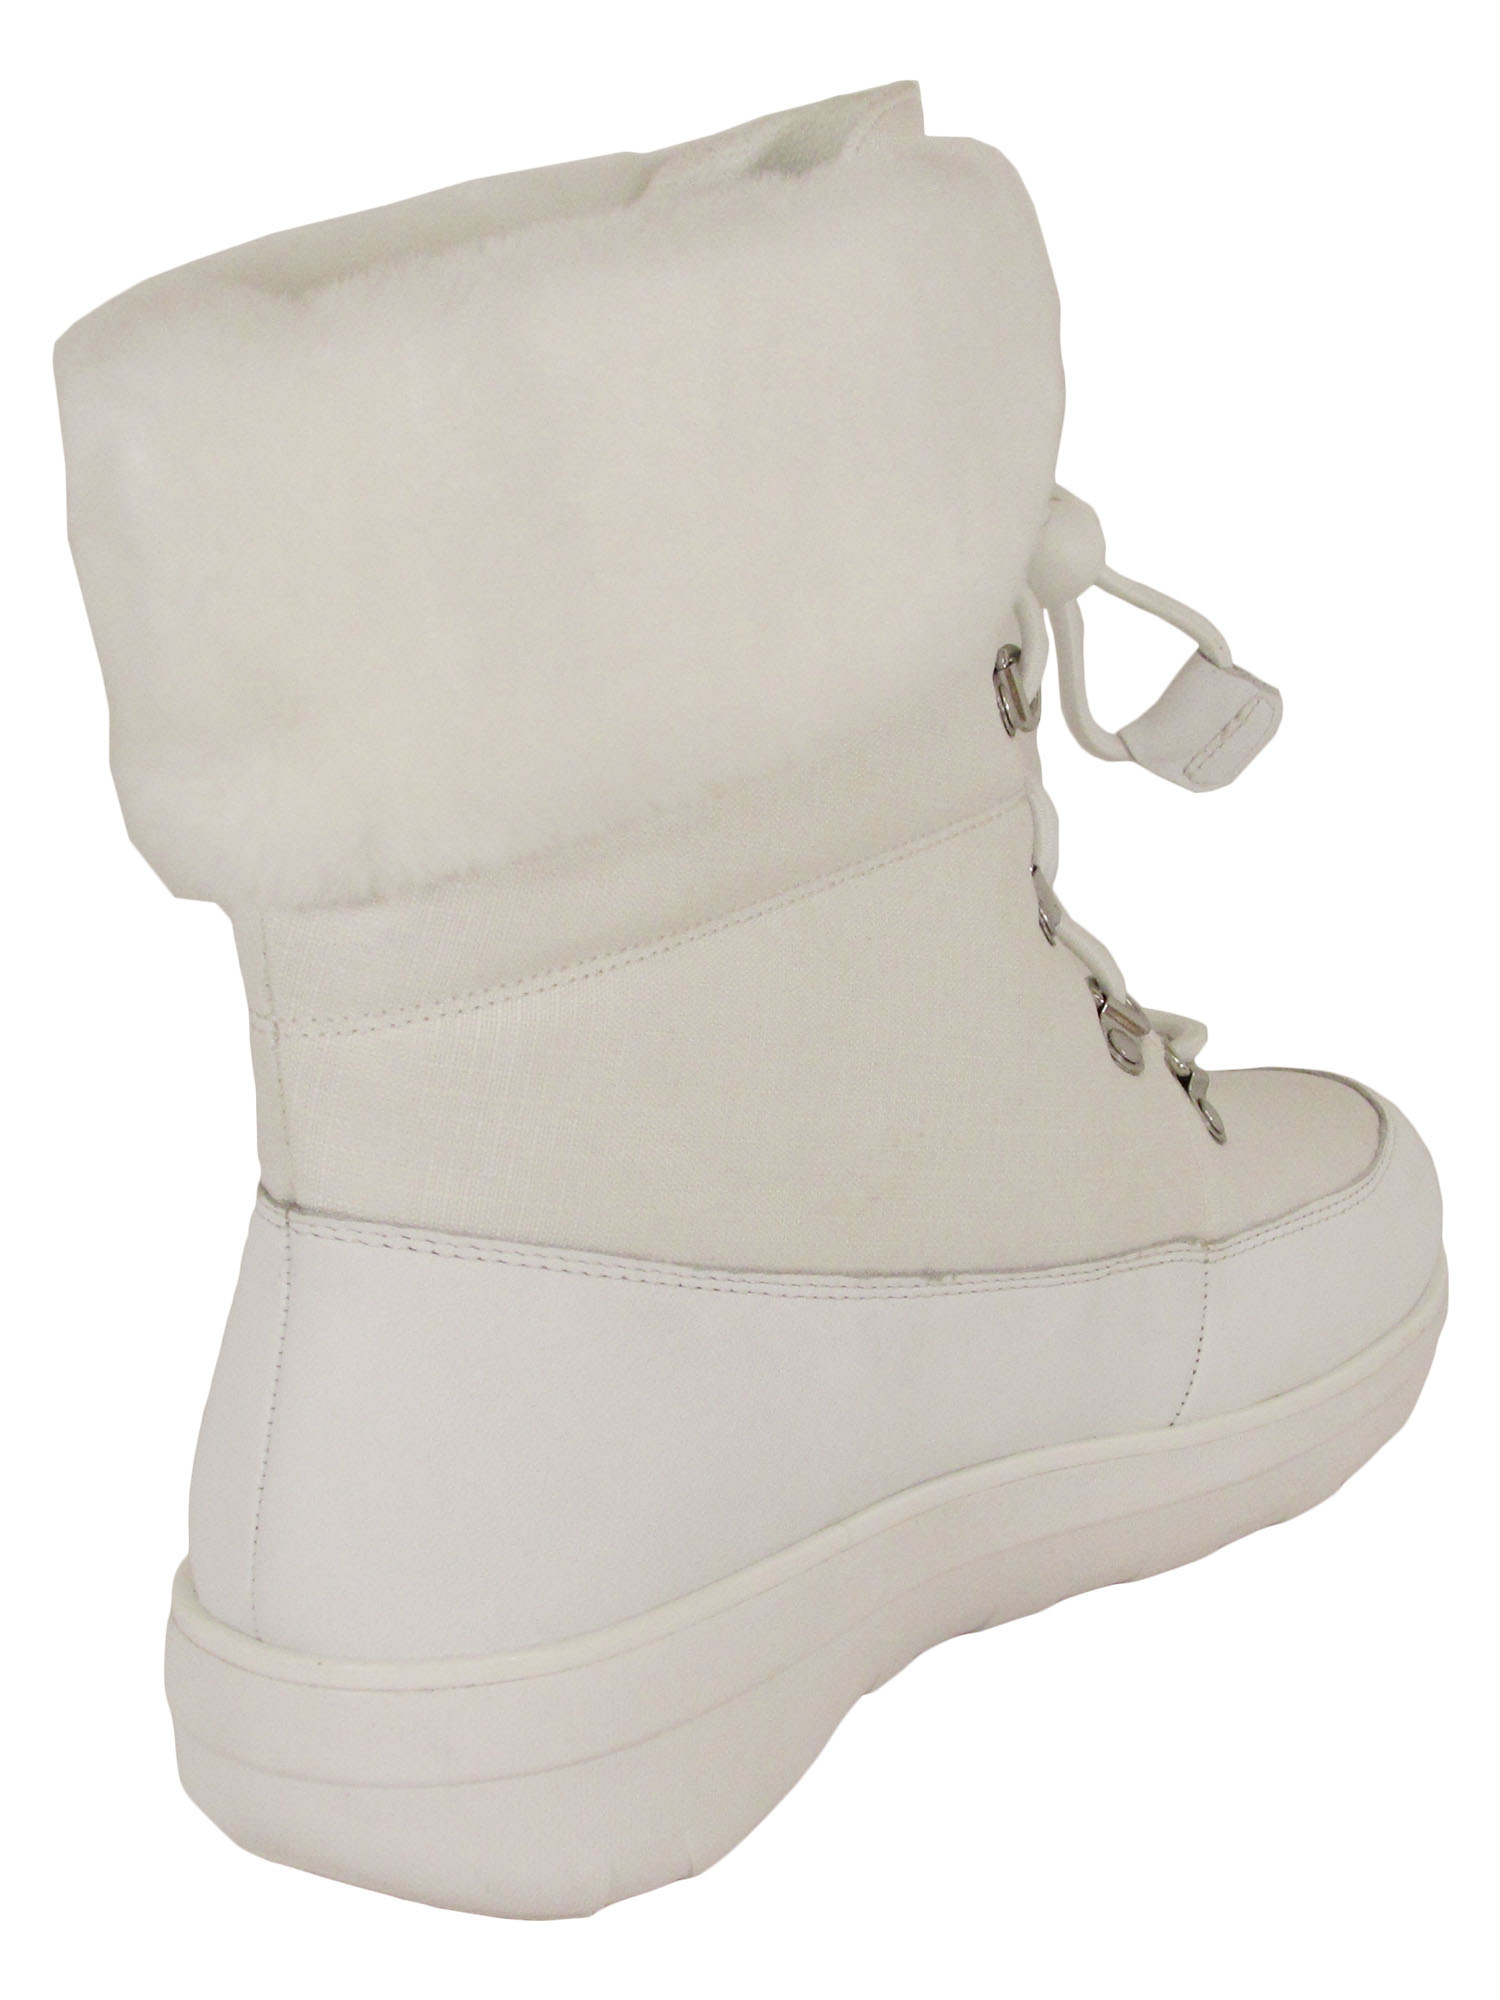 Fitflop-Womens-Holly-Shearling-Lace-Up-Winter-Boot-Shoes thumbnail 10